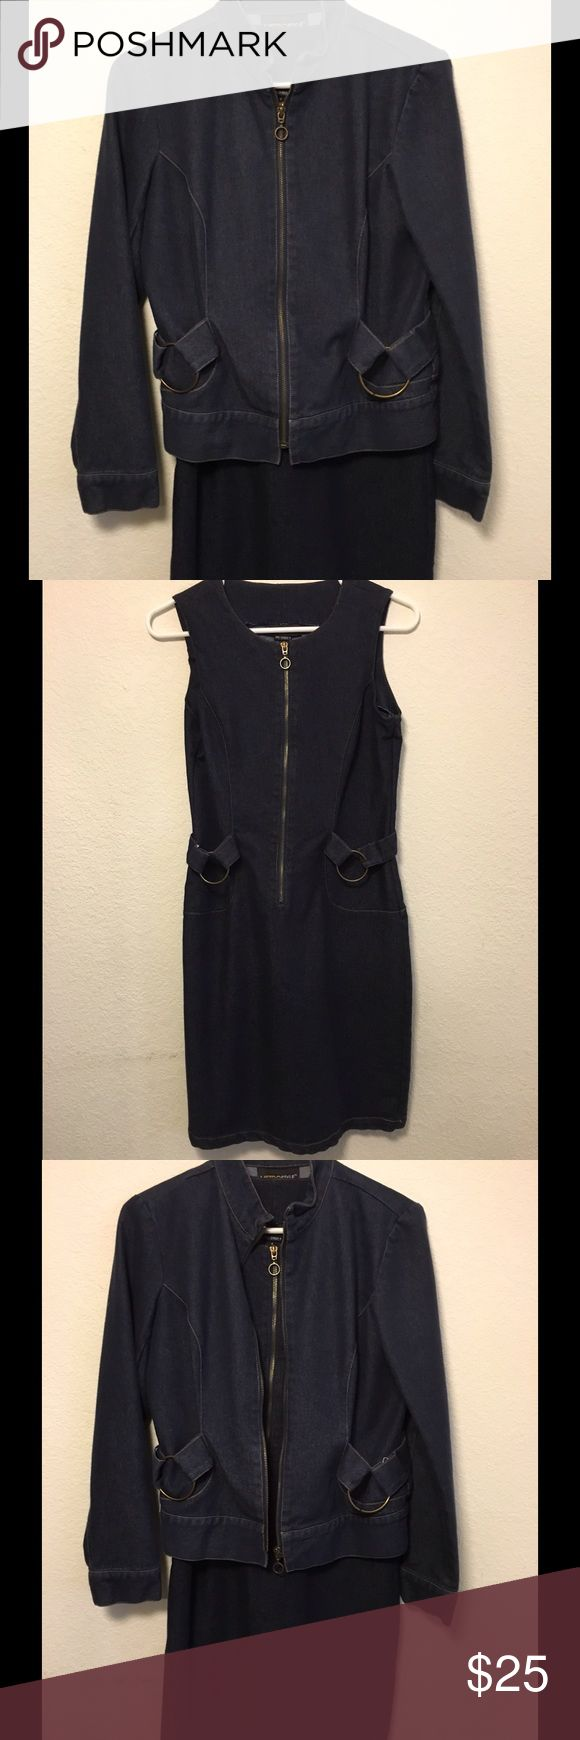 🆕 Listing🎉Cute Denim Dress With Matching Jacket Excellent condition! Denim zip up dress with matching zip up jacket wear alone or together. Above knee. Metrostyle Dresses Midi